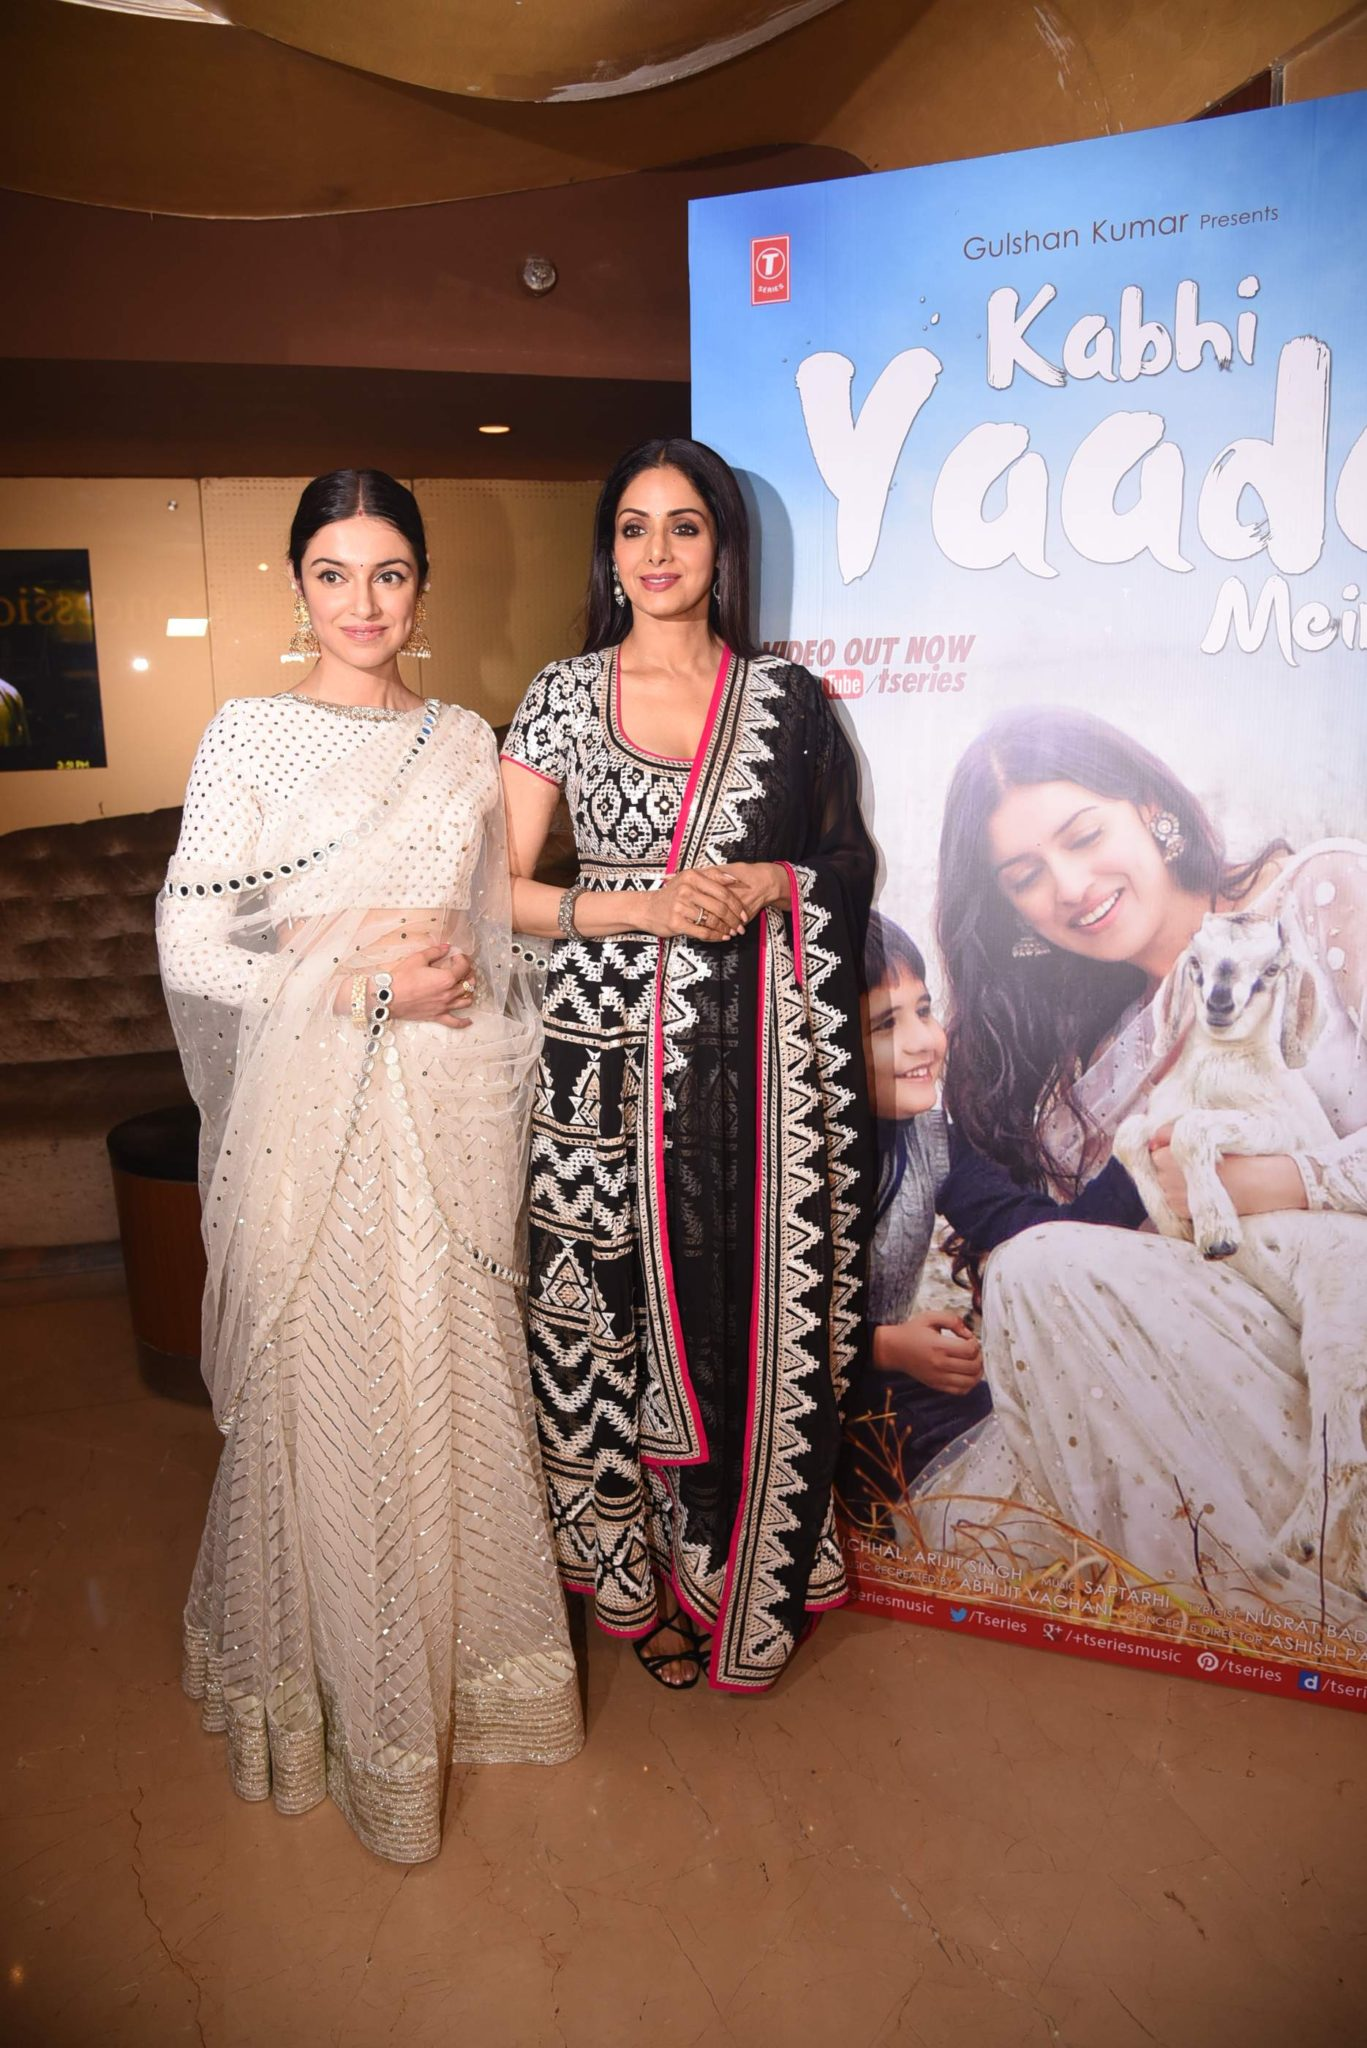 sridevi Photo Stills Of Beautiful Sridevi From 'Kabhi Yaadon Mein' Event Sridevi TSeries 45